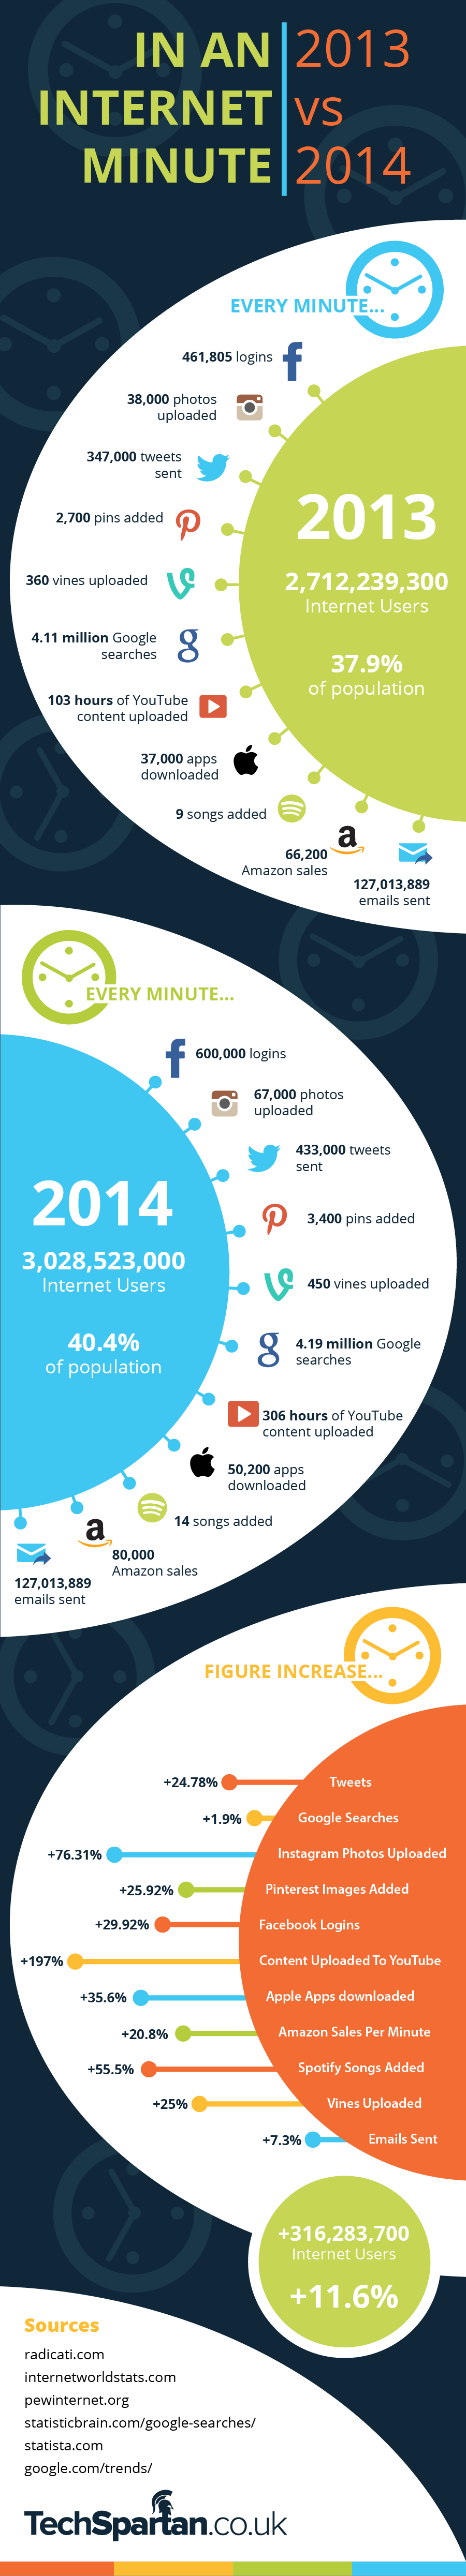 Infographie internet 1 minute 2014